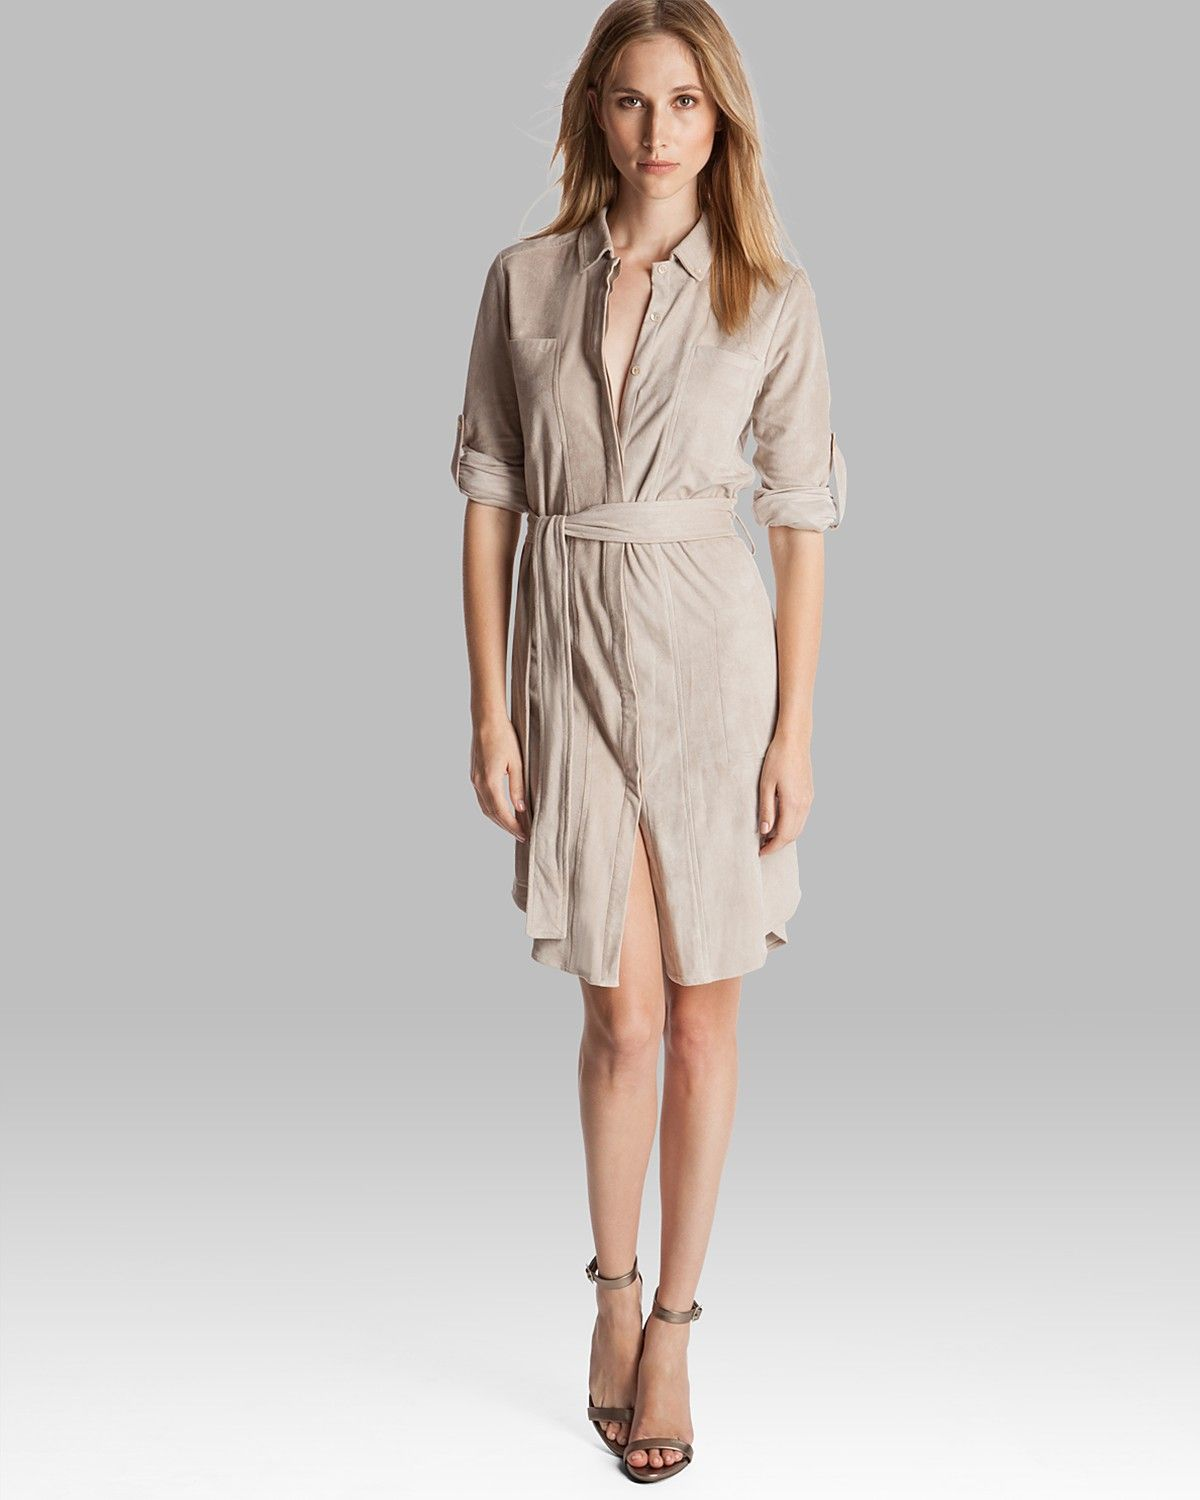 23a40dcfbec4e HALSTON HERITAGE Shirt Dress - Belted